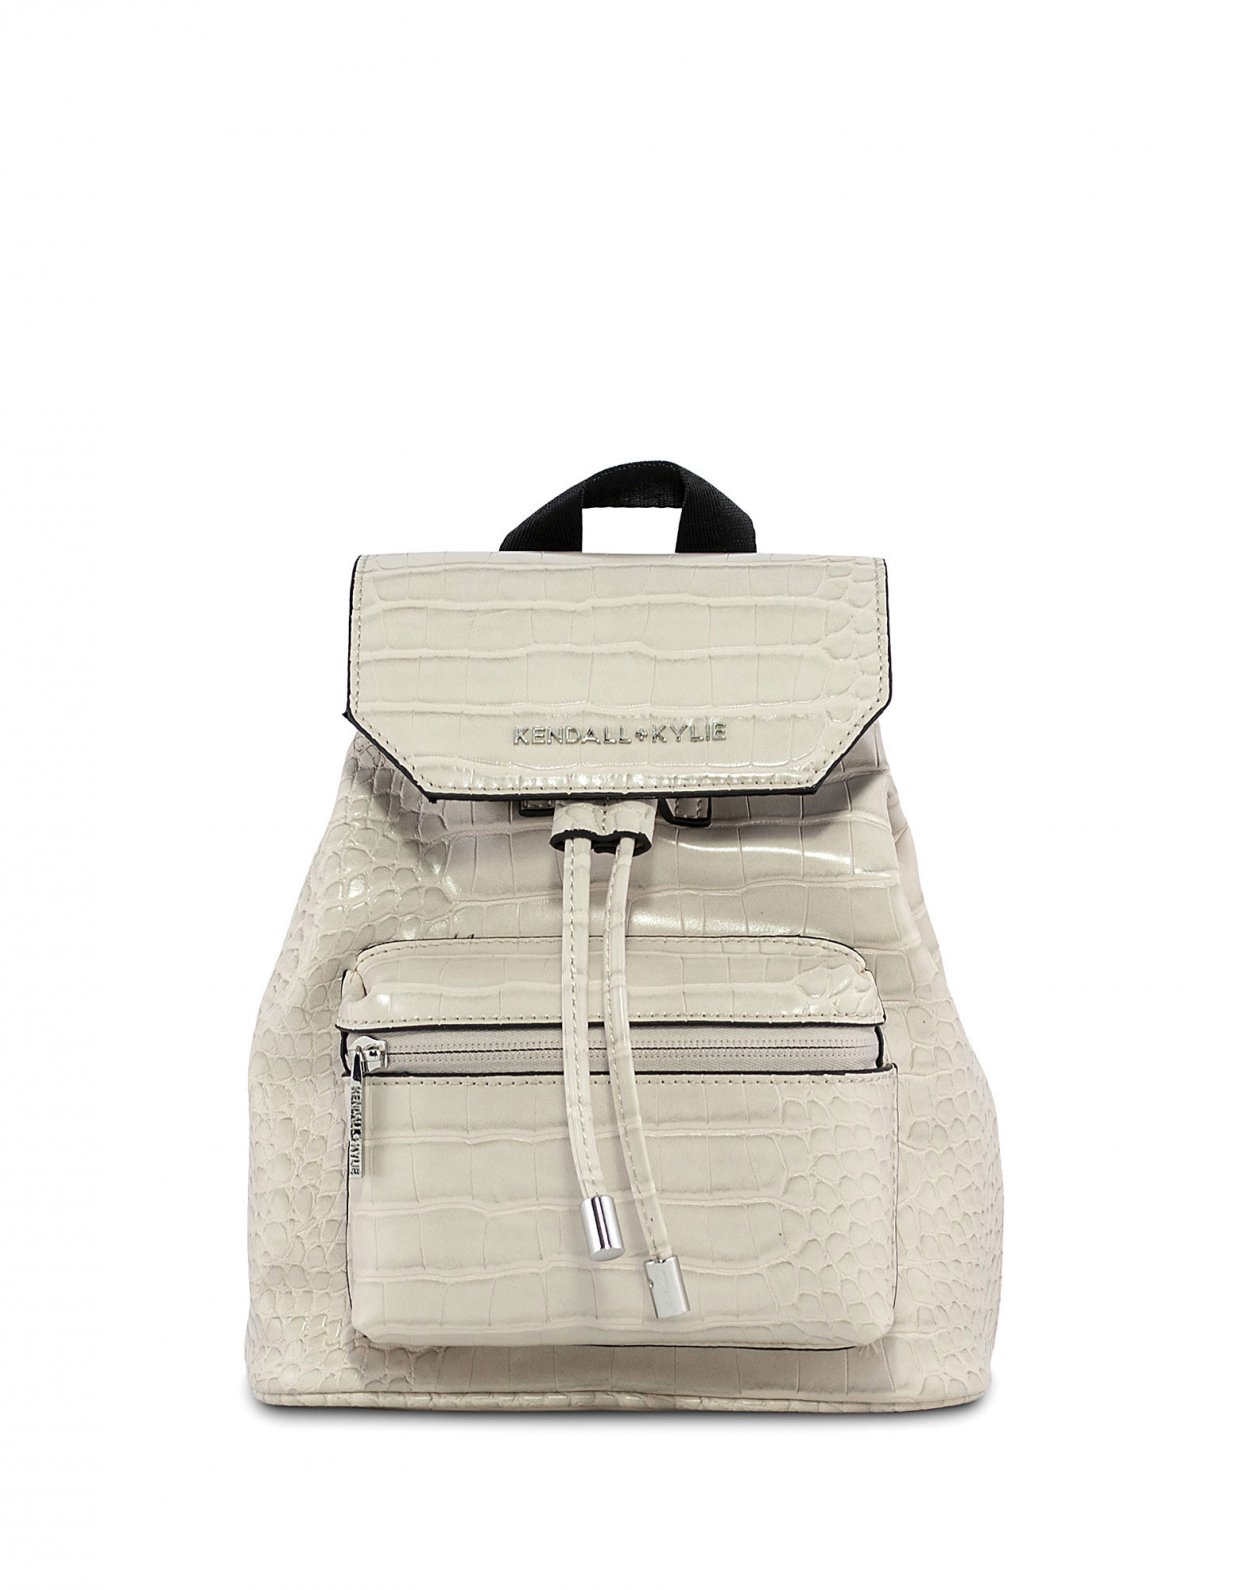 Kendall + Kylie Serena small backpack beige croco